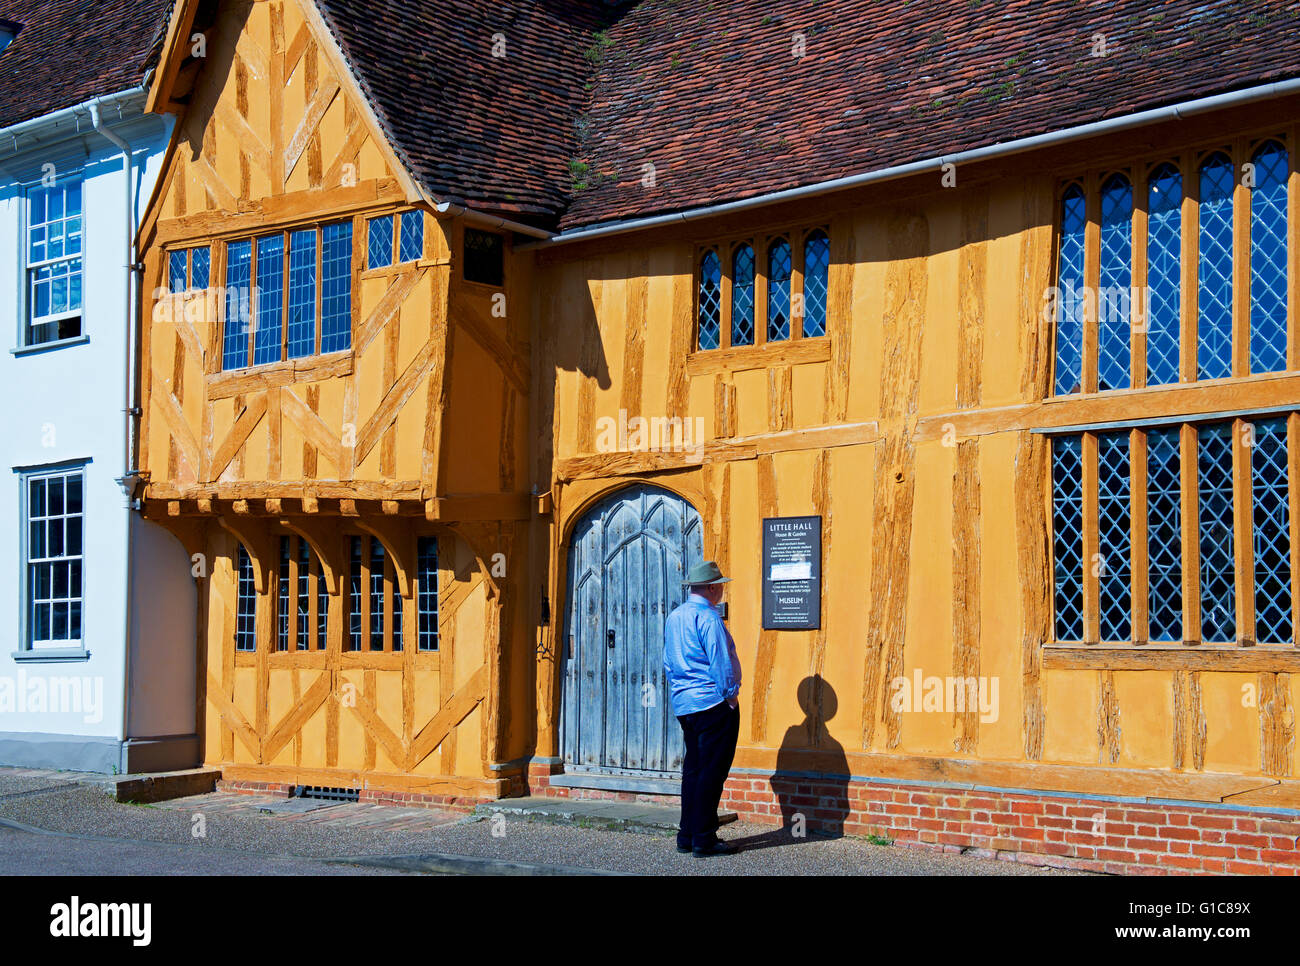 Half-timbered Little Hall, in the village of Lavenham, Suffolk, England UK - Stock Image